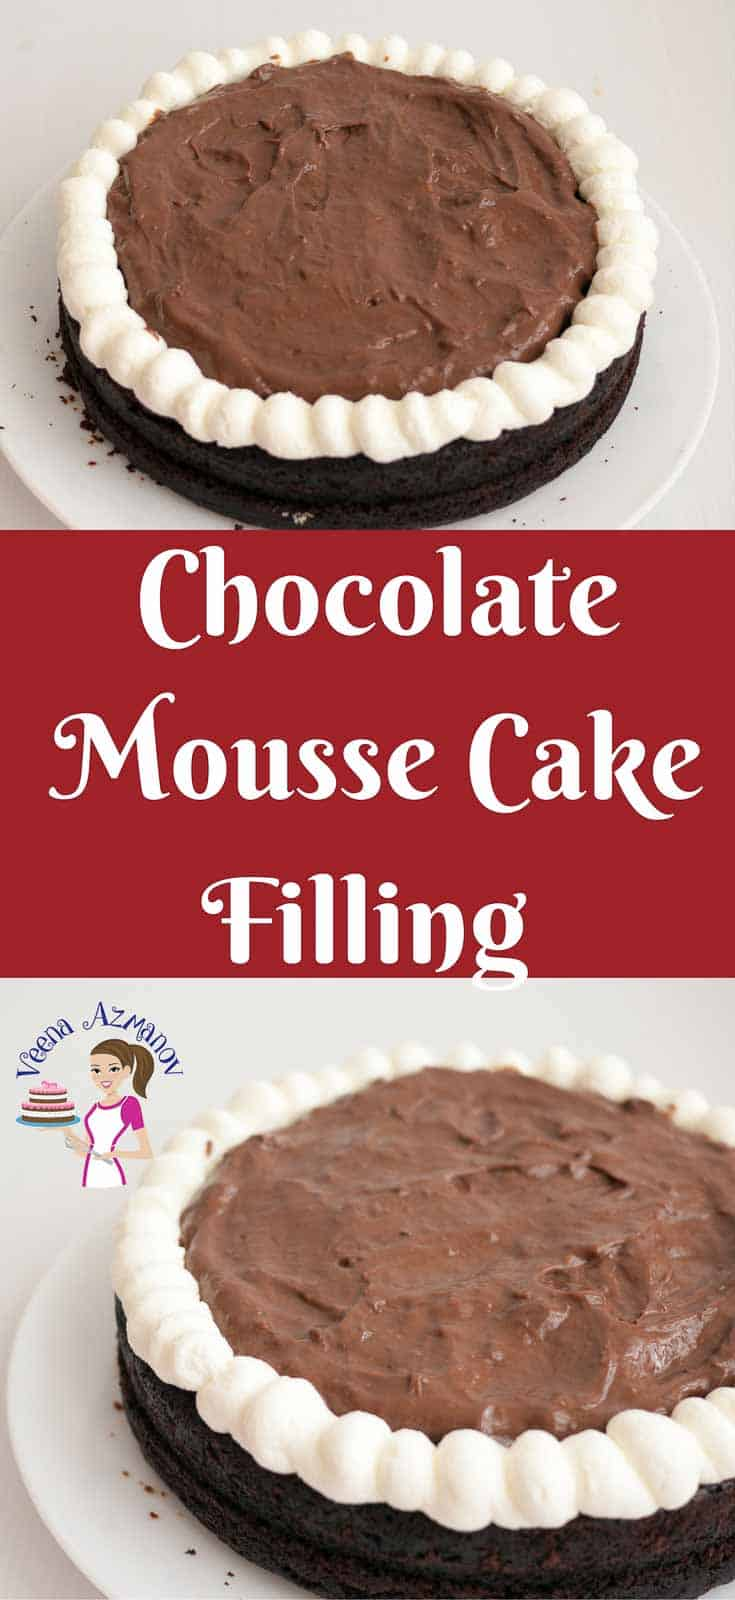 Chocolate Mouse Cake Yield For  In  Hours